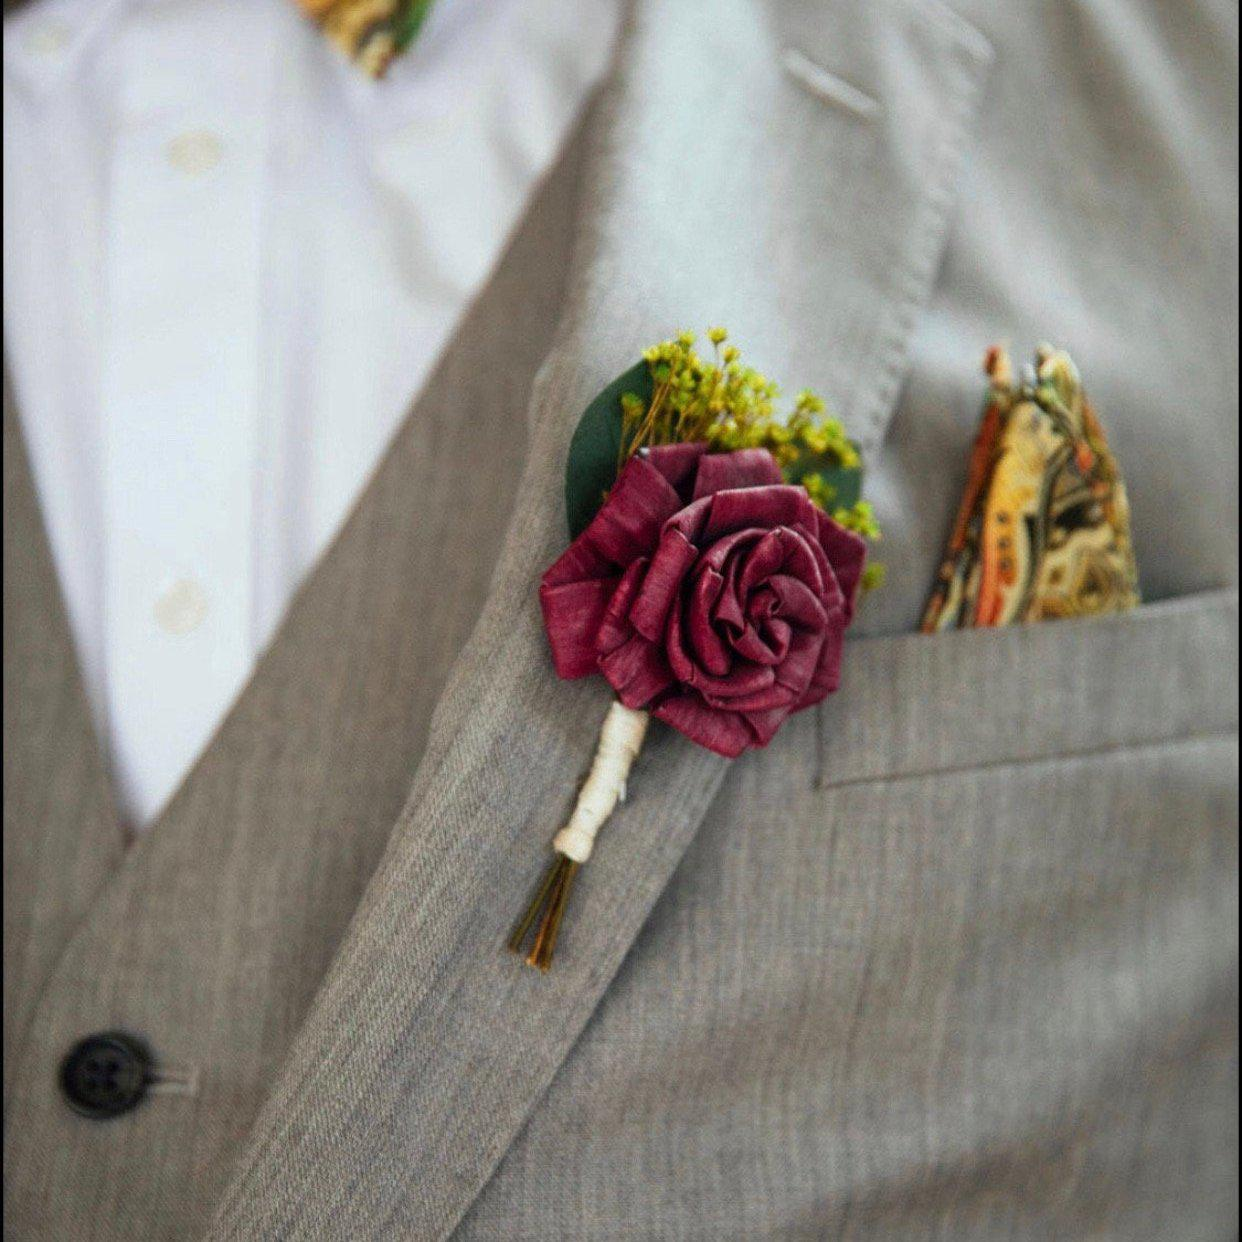 Custom Boutonniere - Wood flowers Bouquets, Boutonniere, wedding Floral Decor & Accessories - Papiro Wood Flower Designs